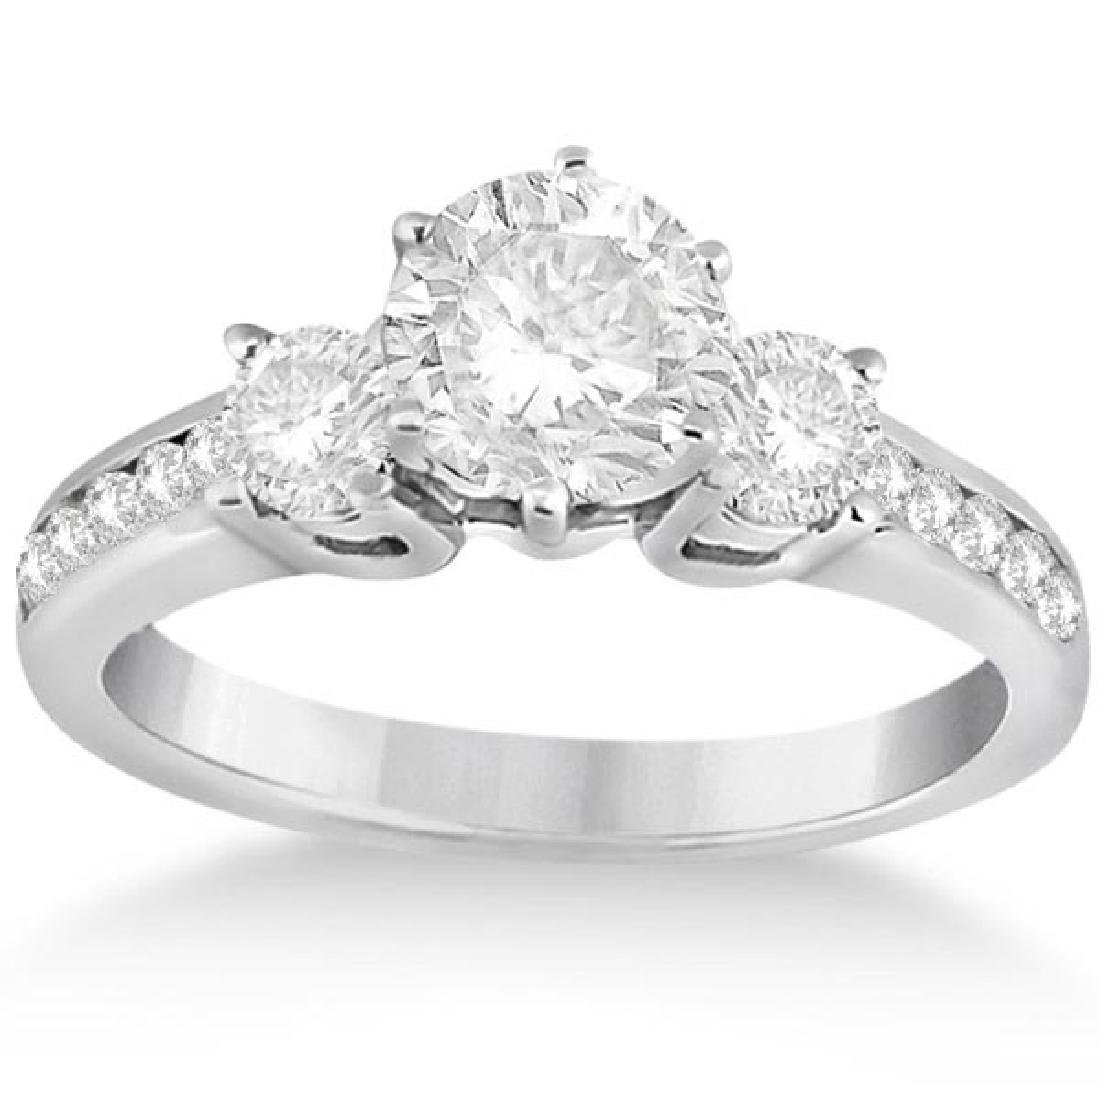 Three-Stone Diamond Engagement Ring in White Gold 1.70